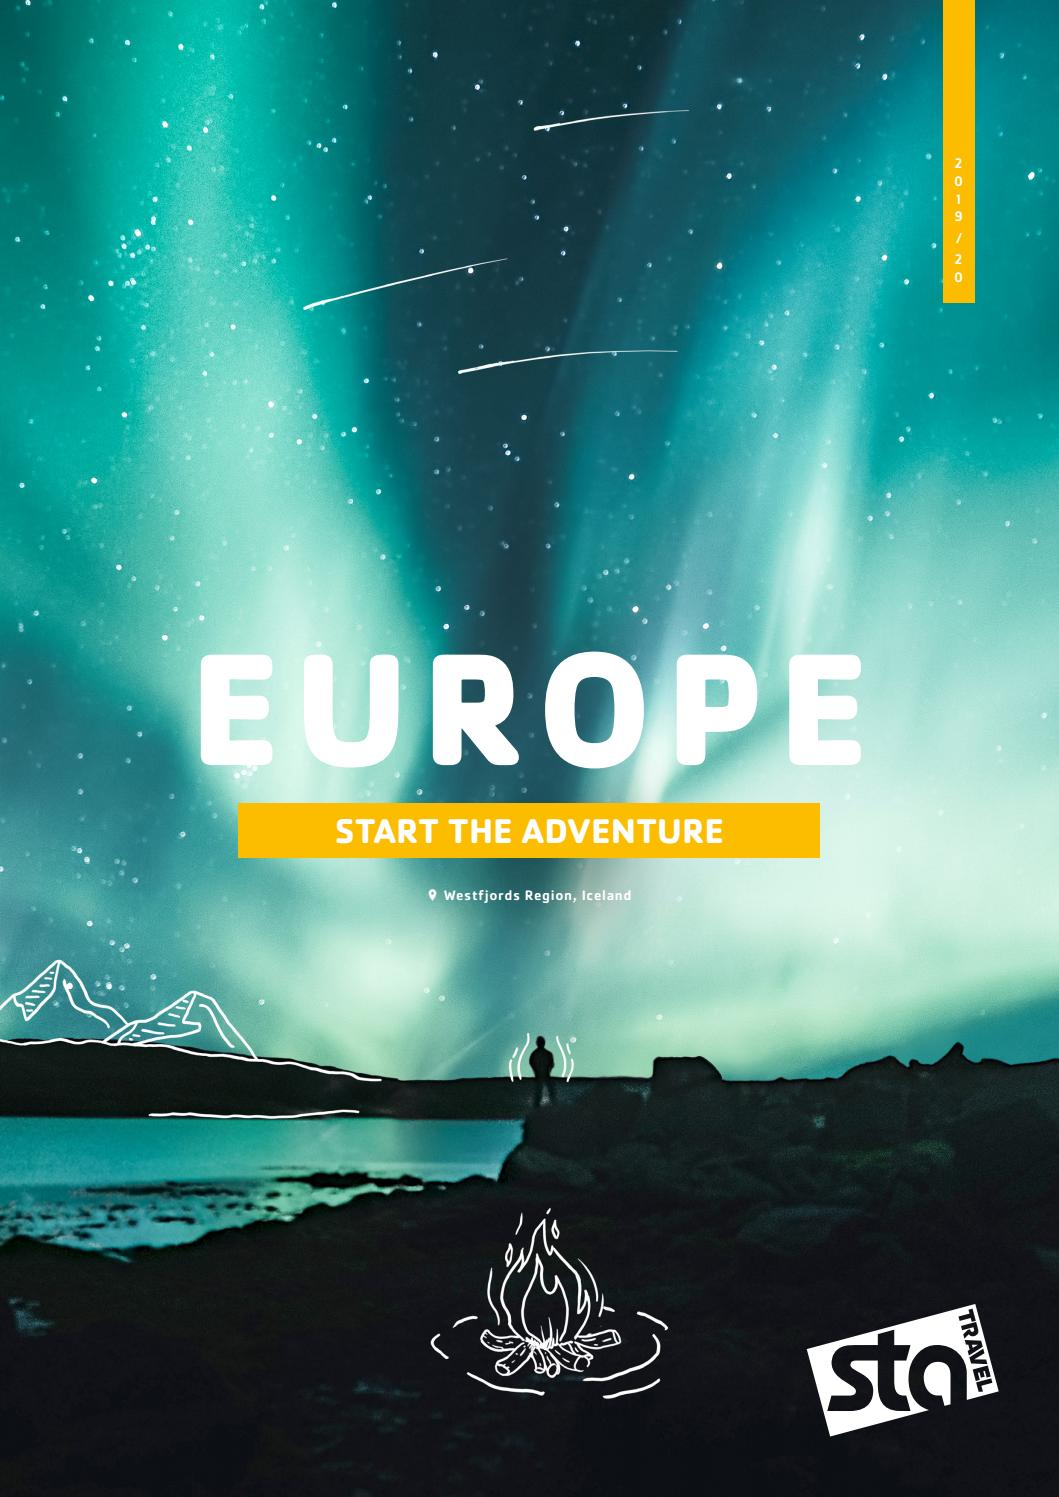 39501669022bc1 Europe 2019-20 GBP by STA Travel Ltd - issuu